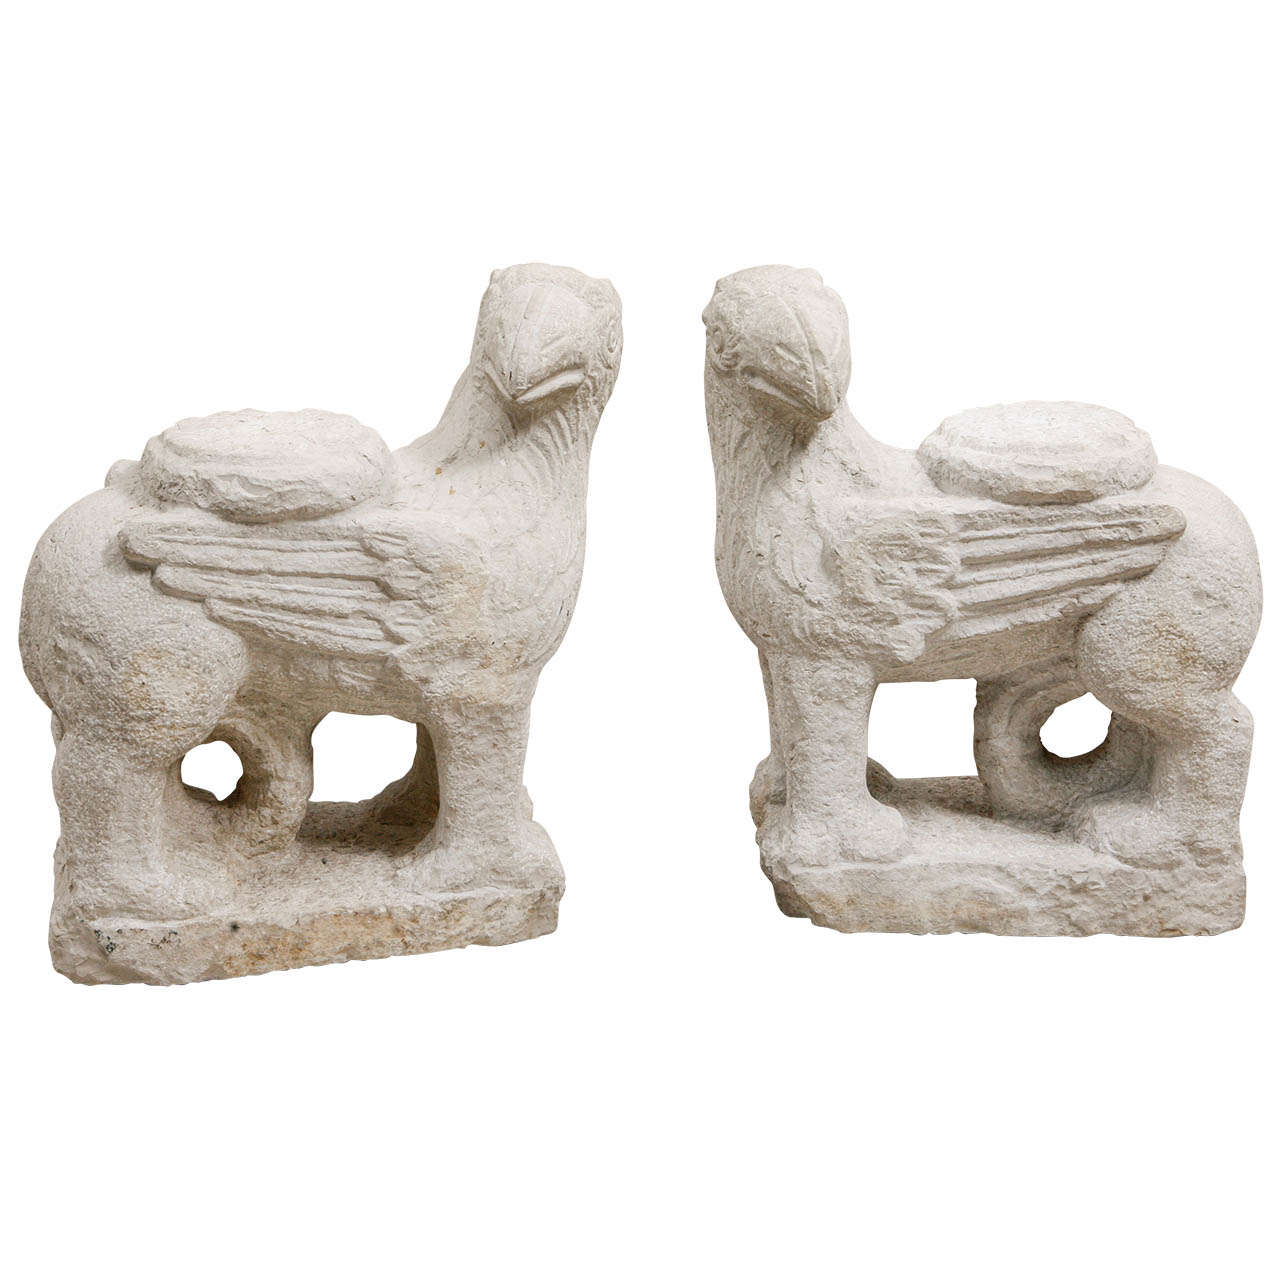 Pair of Roman Mythological Winged Creatures in Hand-Carved Stone